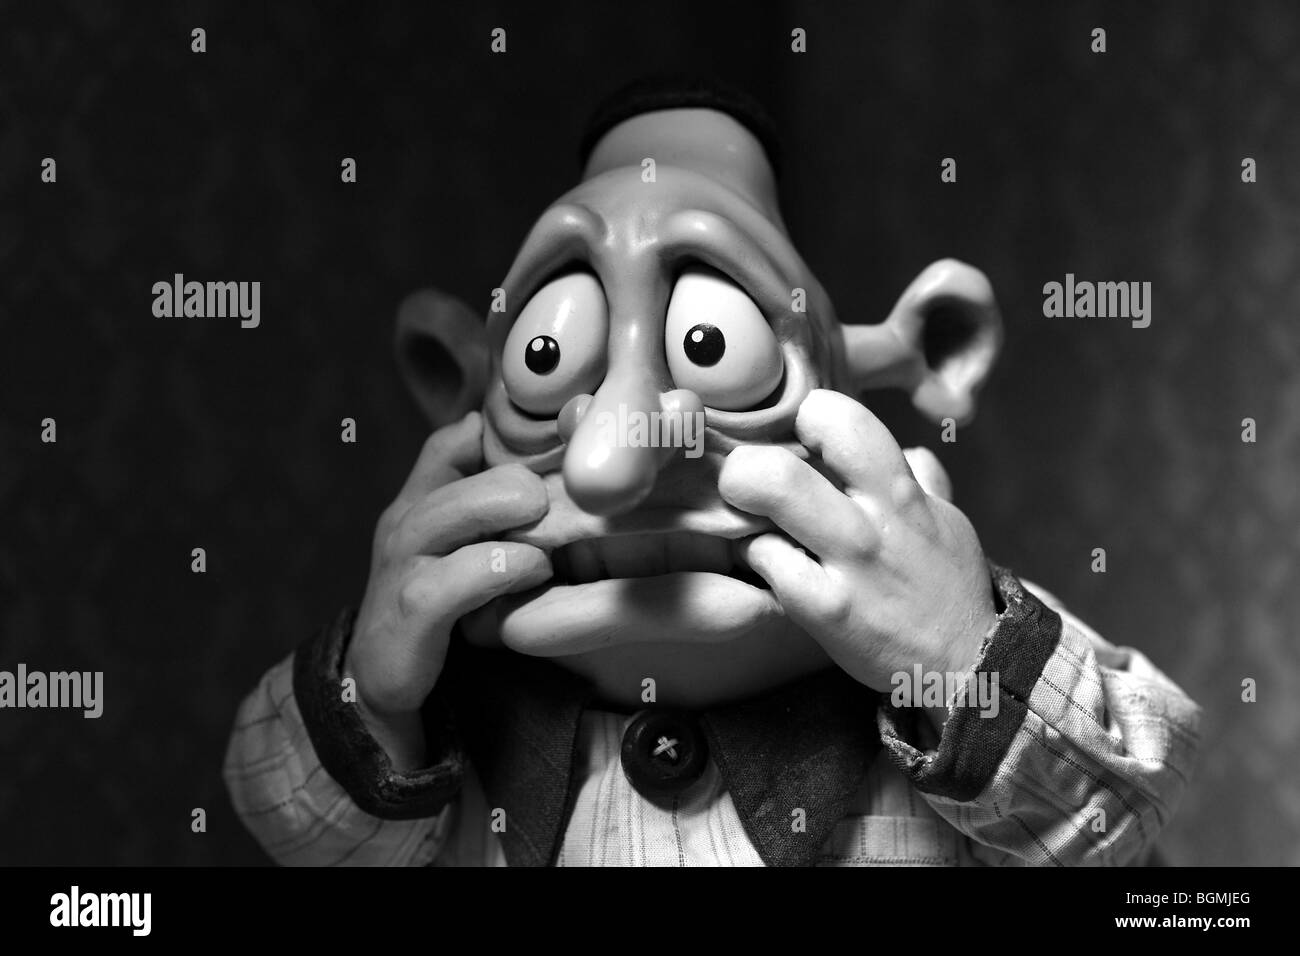 Mary and Max Year : 2009 Director : Adam Elliot Animation - Stock Image